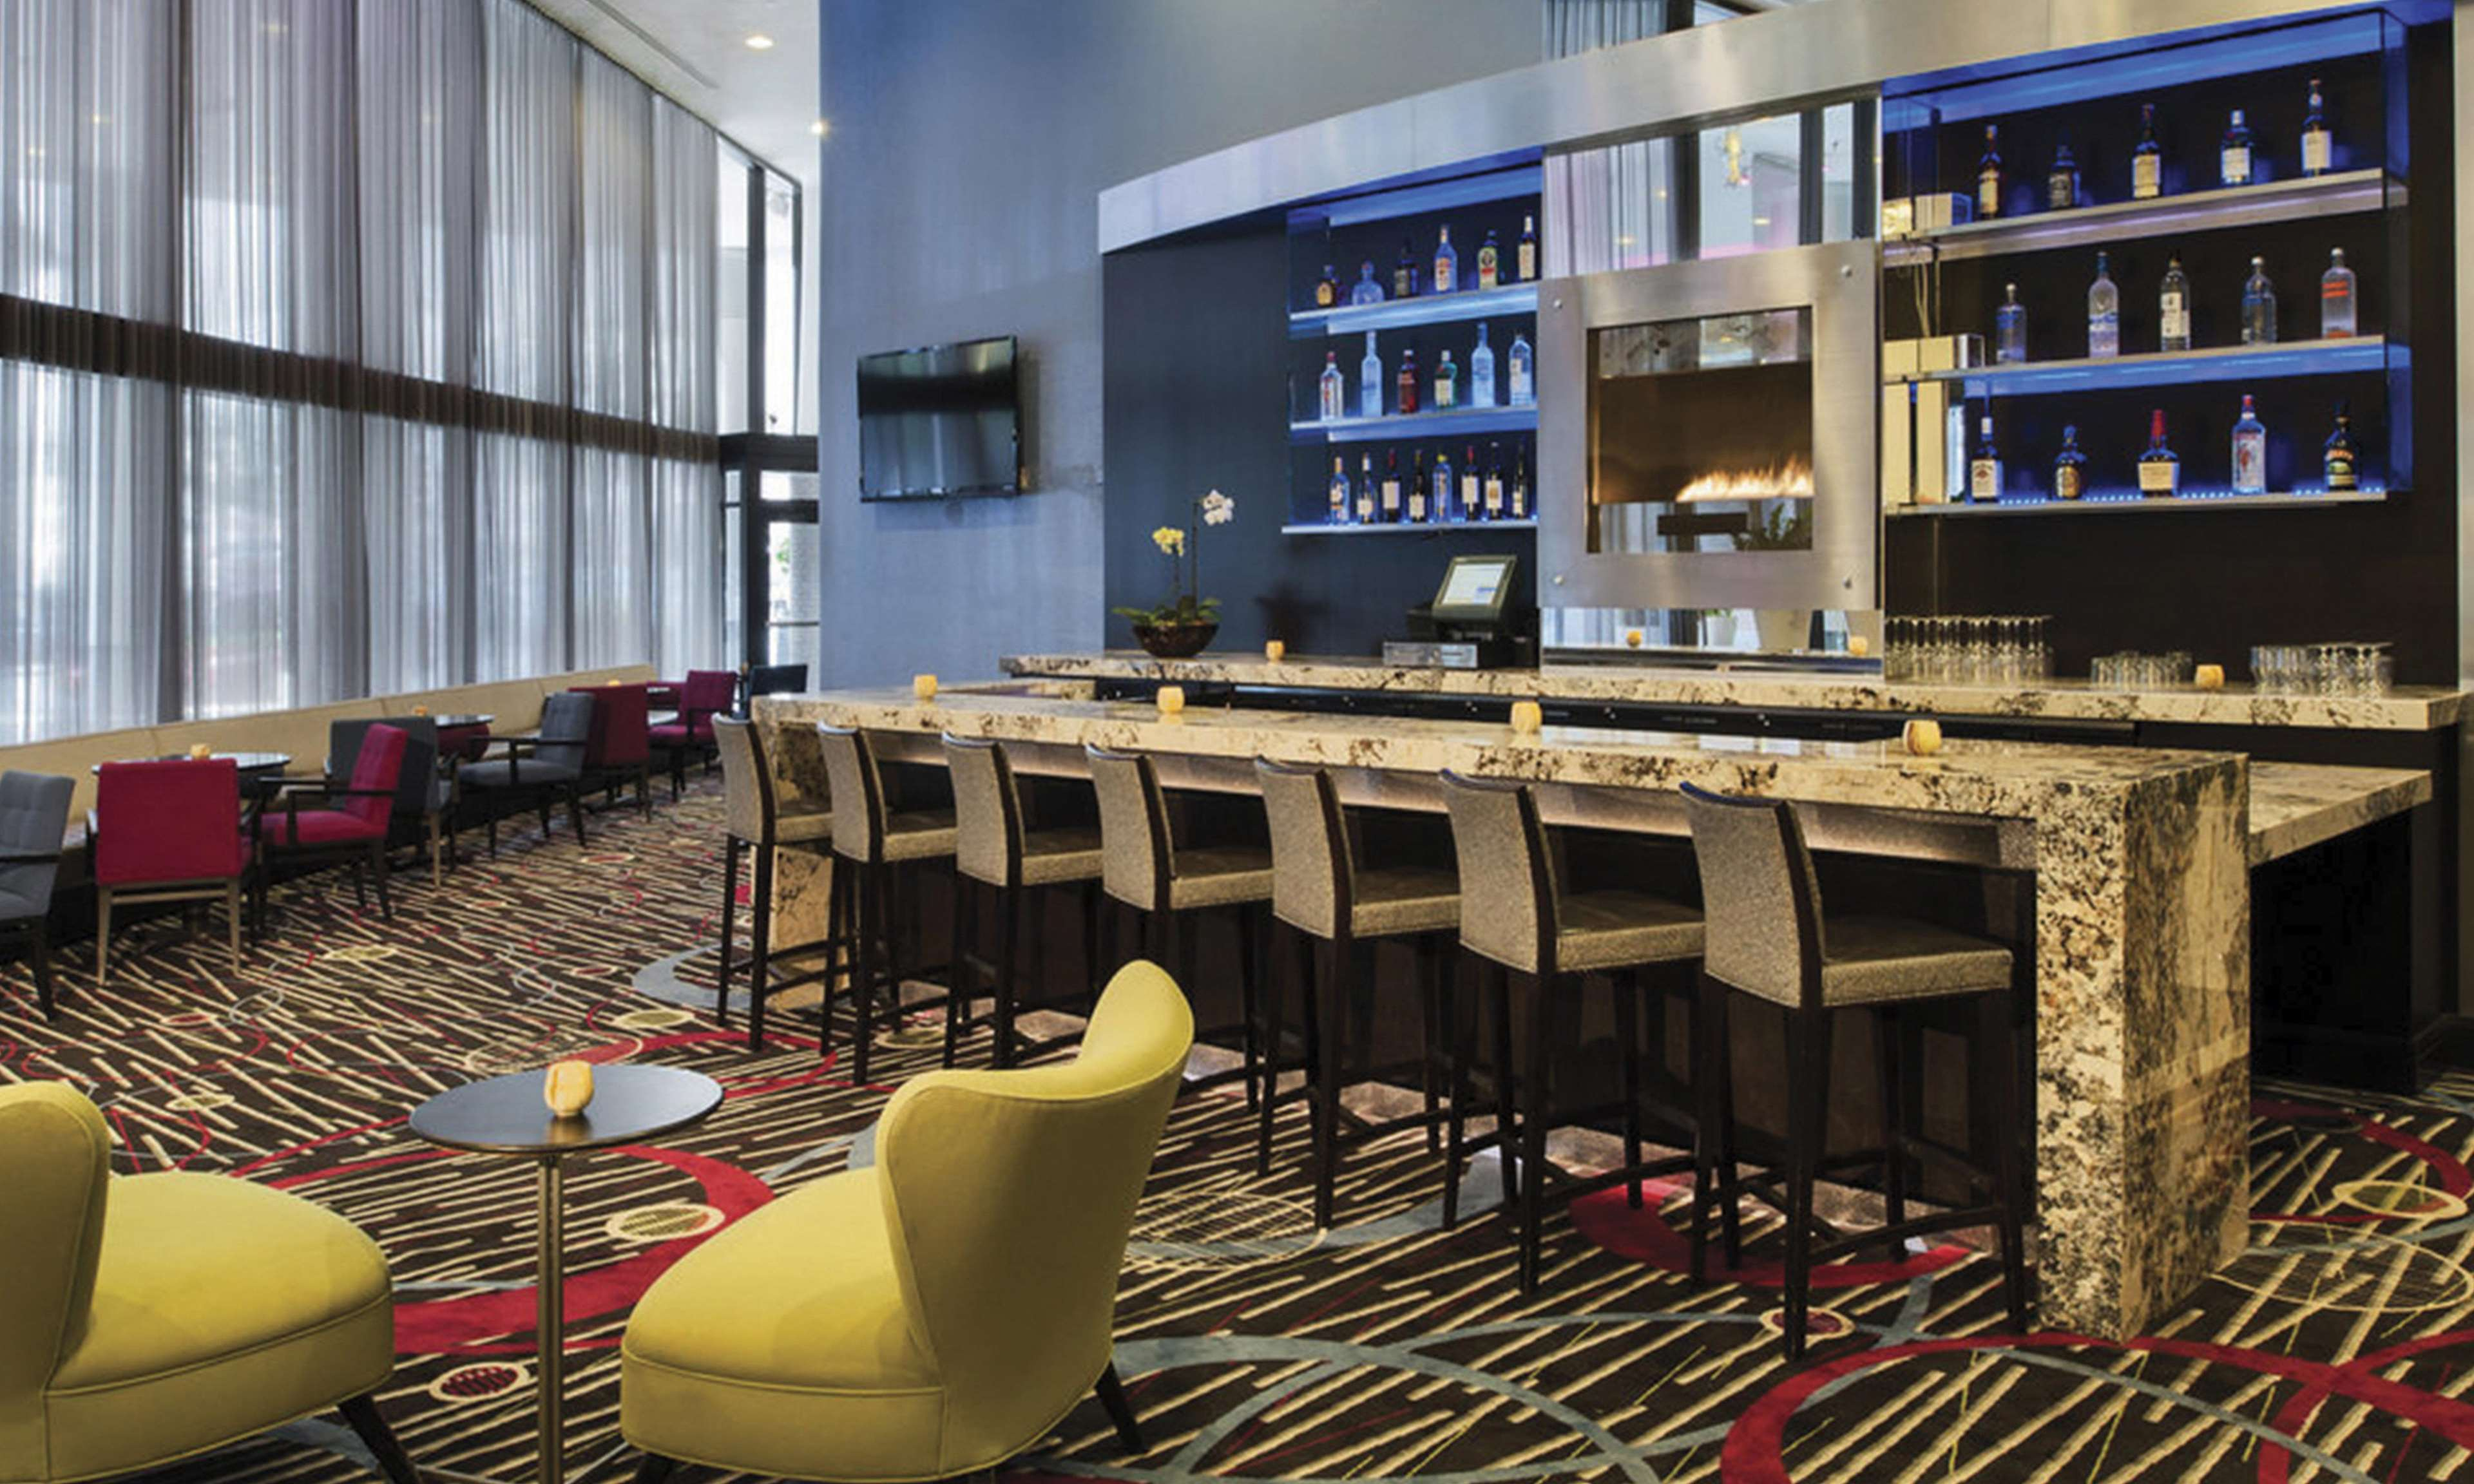 Hilton Grand Vacations Chicago Downtown Magnificent Mile image 13